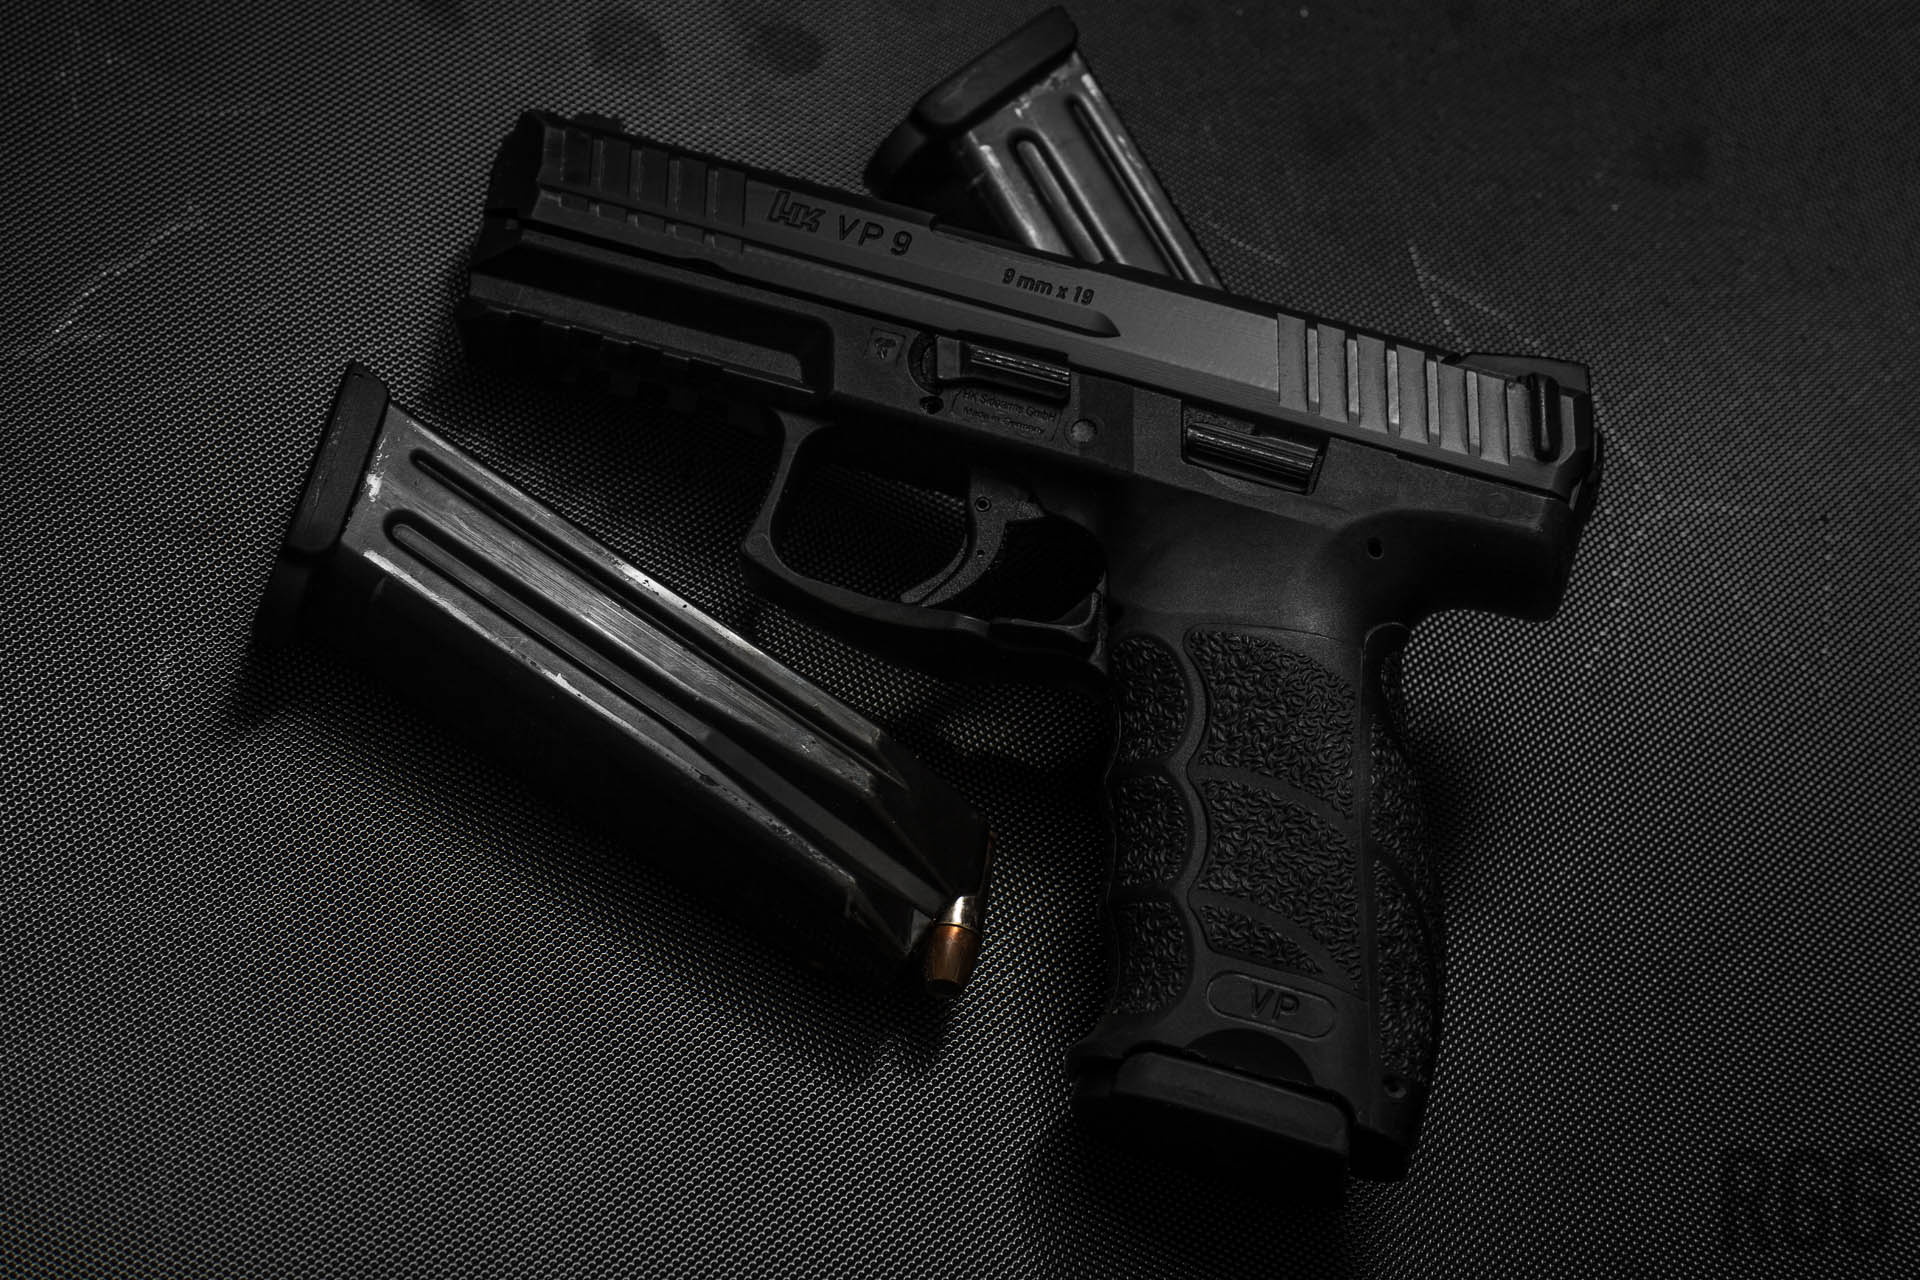 It's a little rough around the edges, but my Heckler & Koch VP9 has performed like a champ...